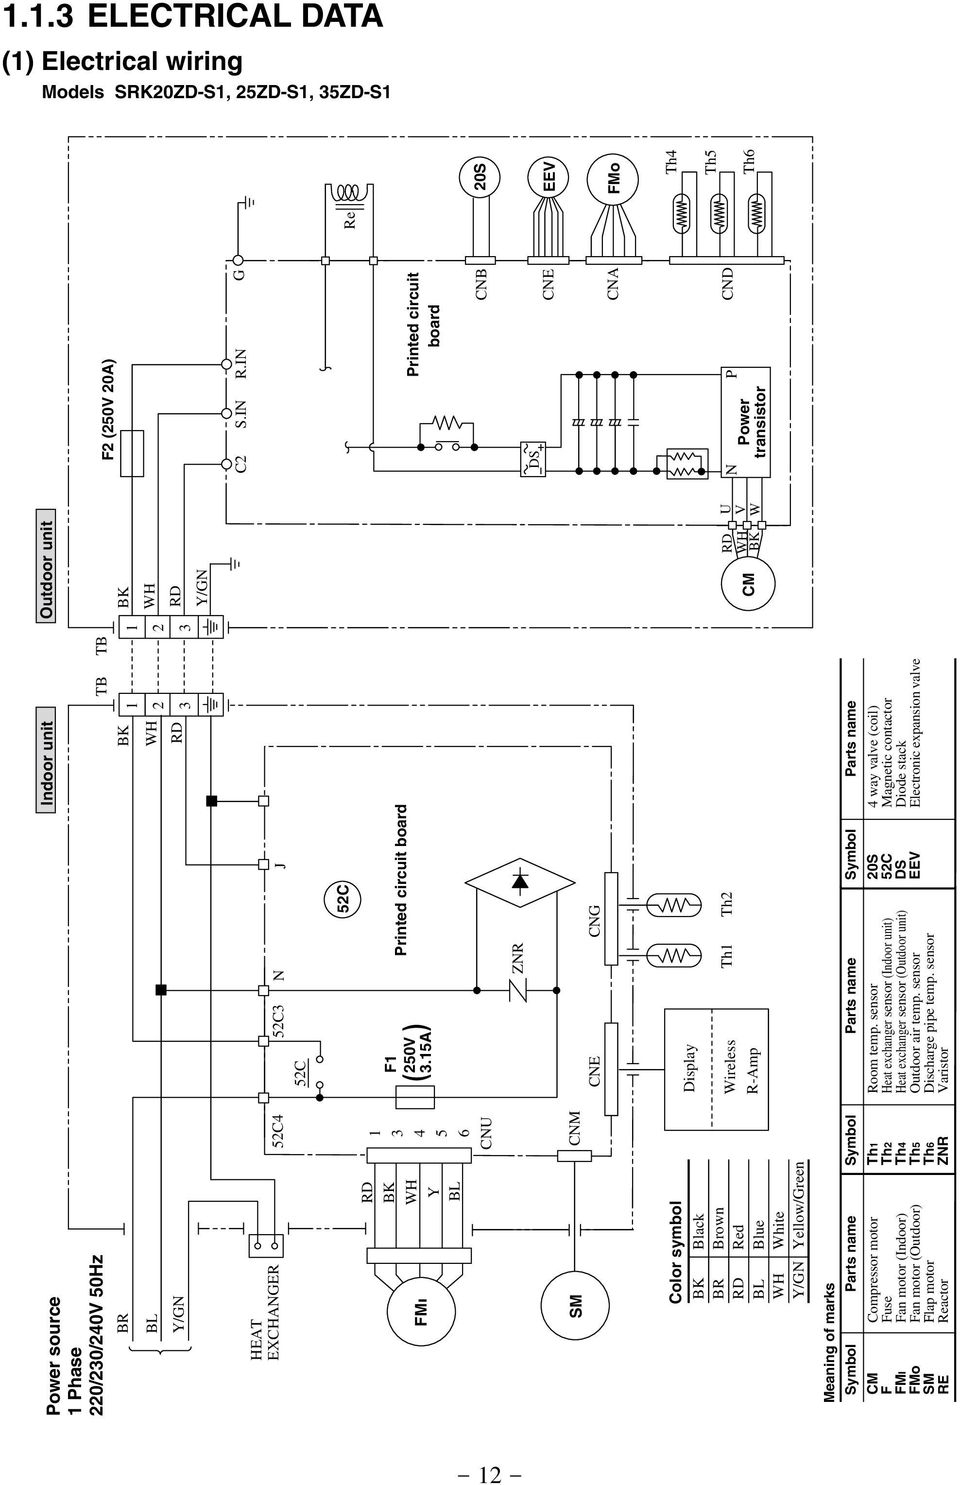 airtemp heat pump wiring diagram Download-Airtemp Heat Pump Wiring Diagram Unique Inverter Wall Mounted Type Room Air Conditioner Split System Air 10-d